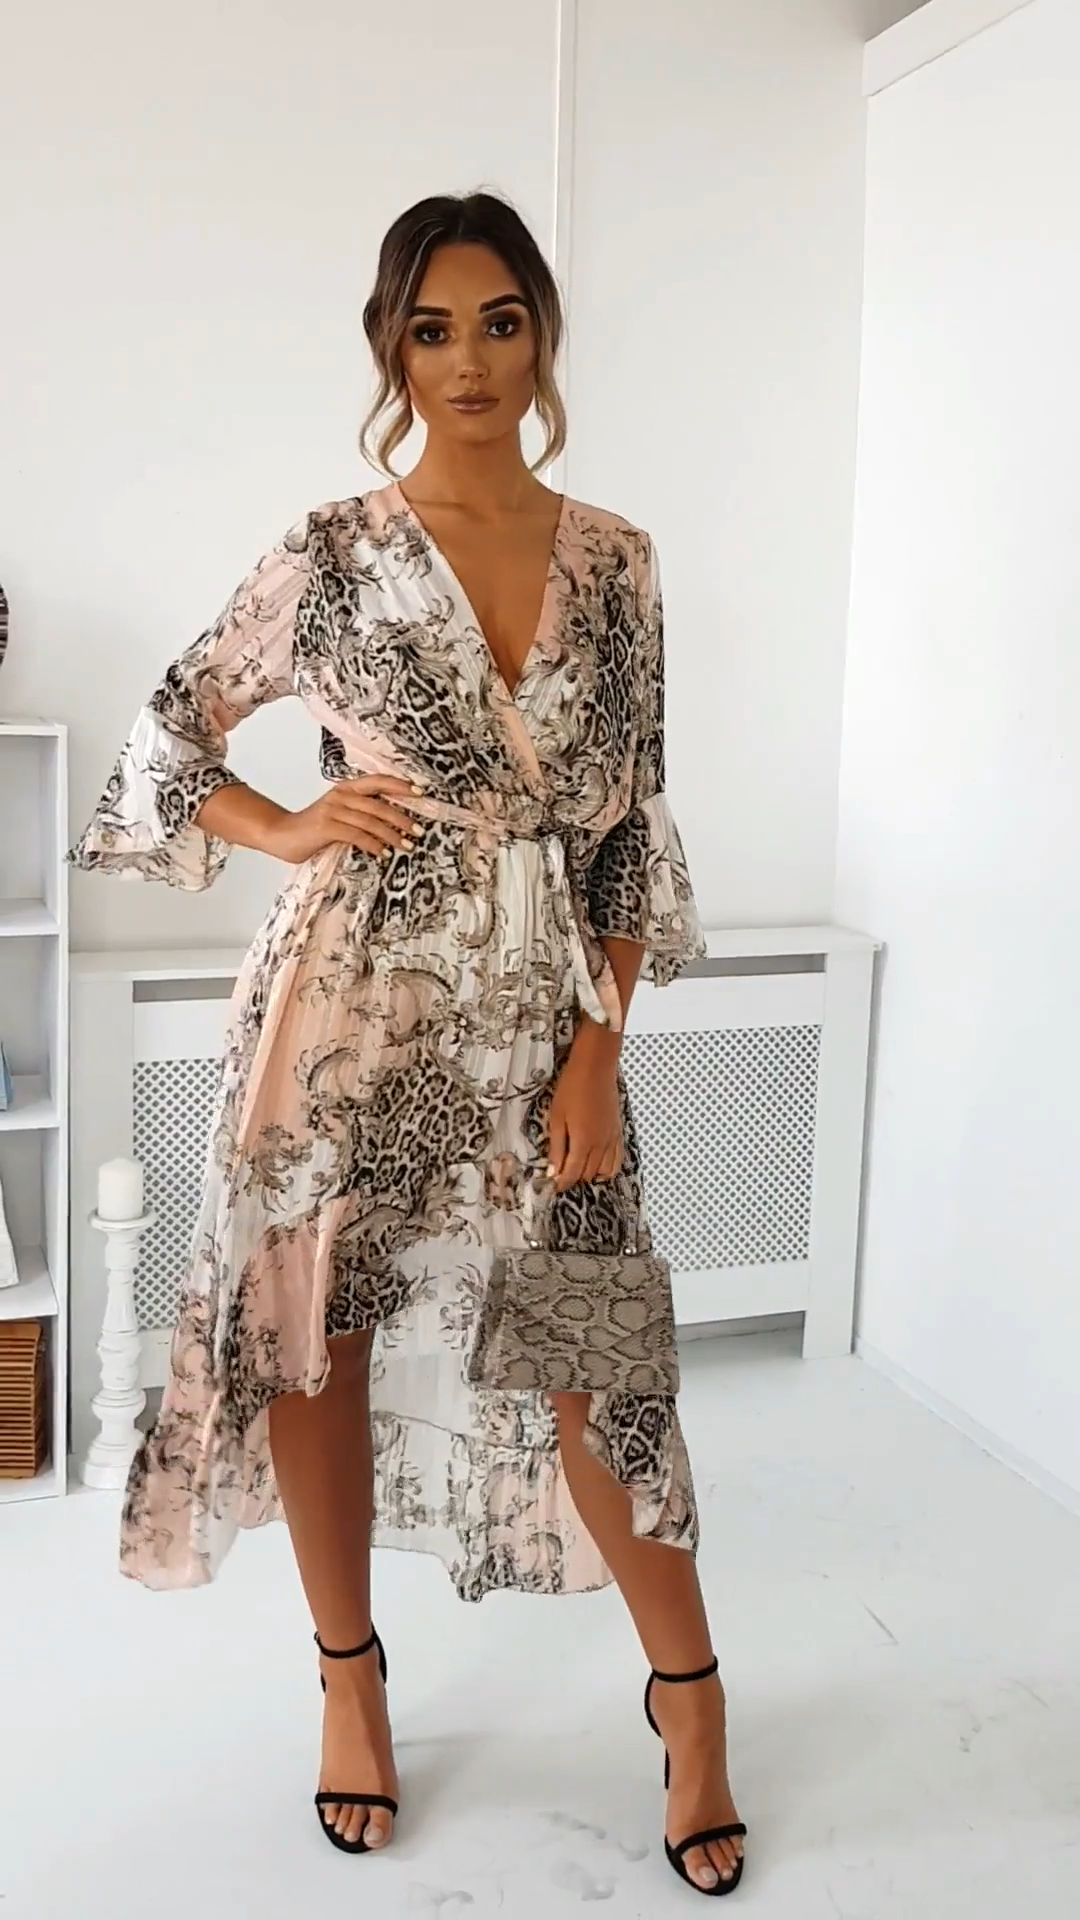 Printed Floaty Maxi Dress In Lht Pink Summer Dresses Dress Floaty Lht Maxi Pink Printed In 2020 Maxi Dress Floaty Maxi Dress Summer Dresses